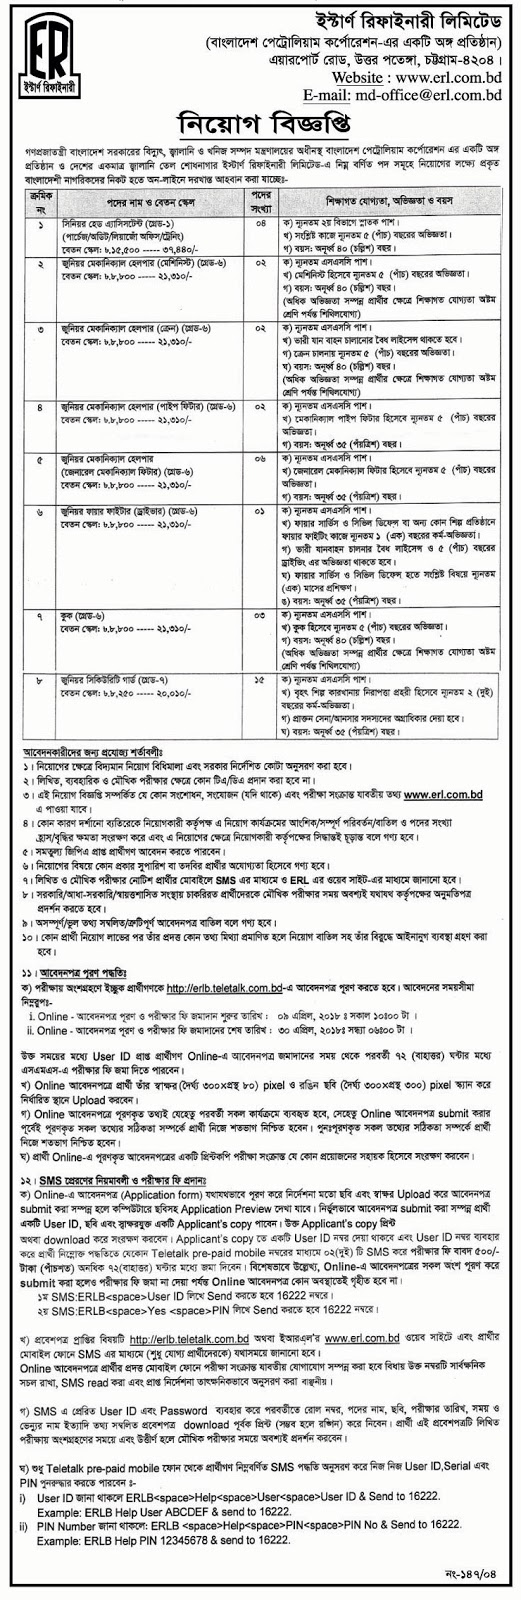 Eastern Refinery Limited (ERL) Job Circular 2018